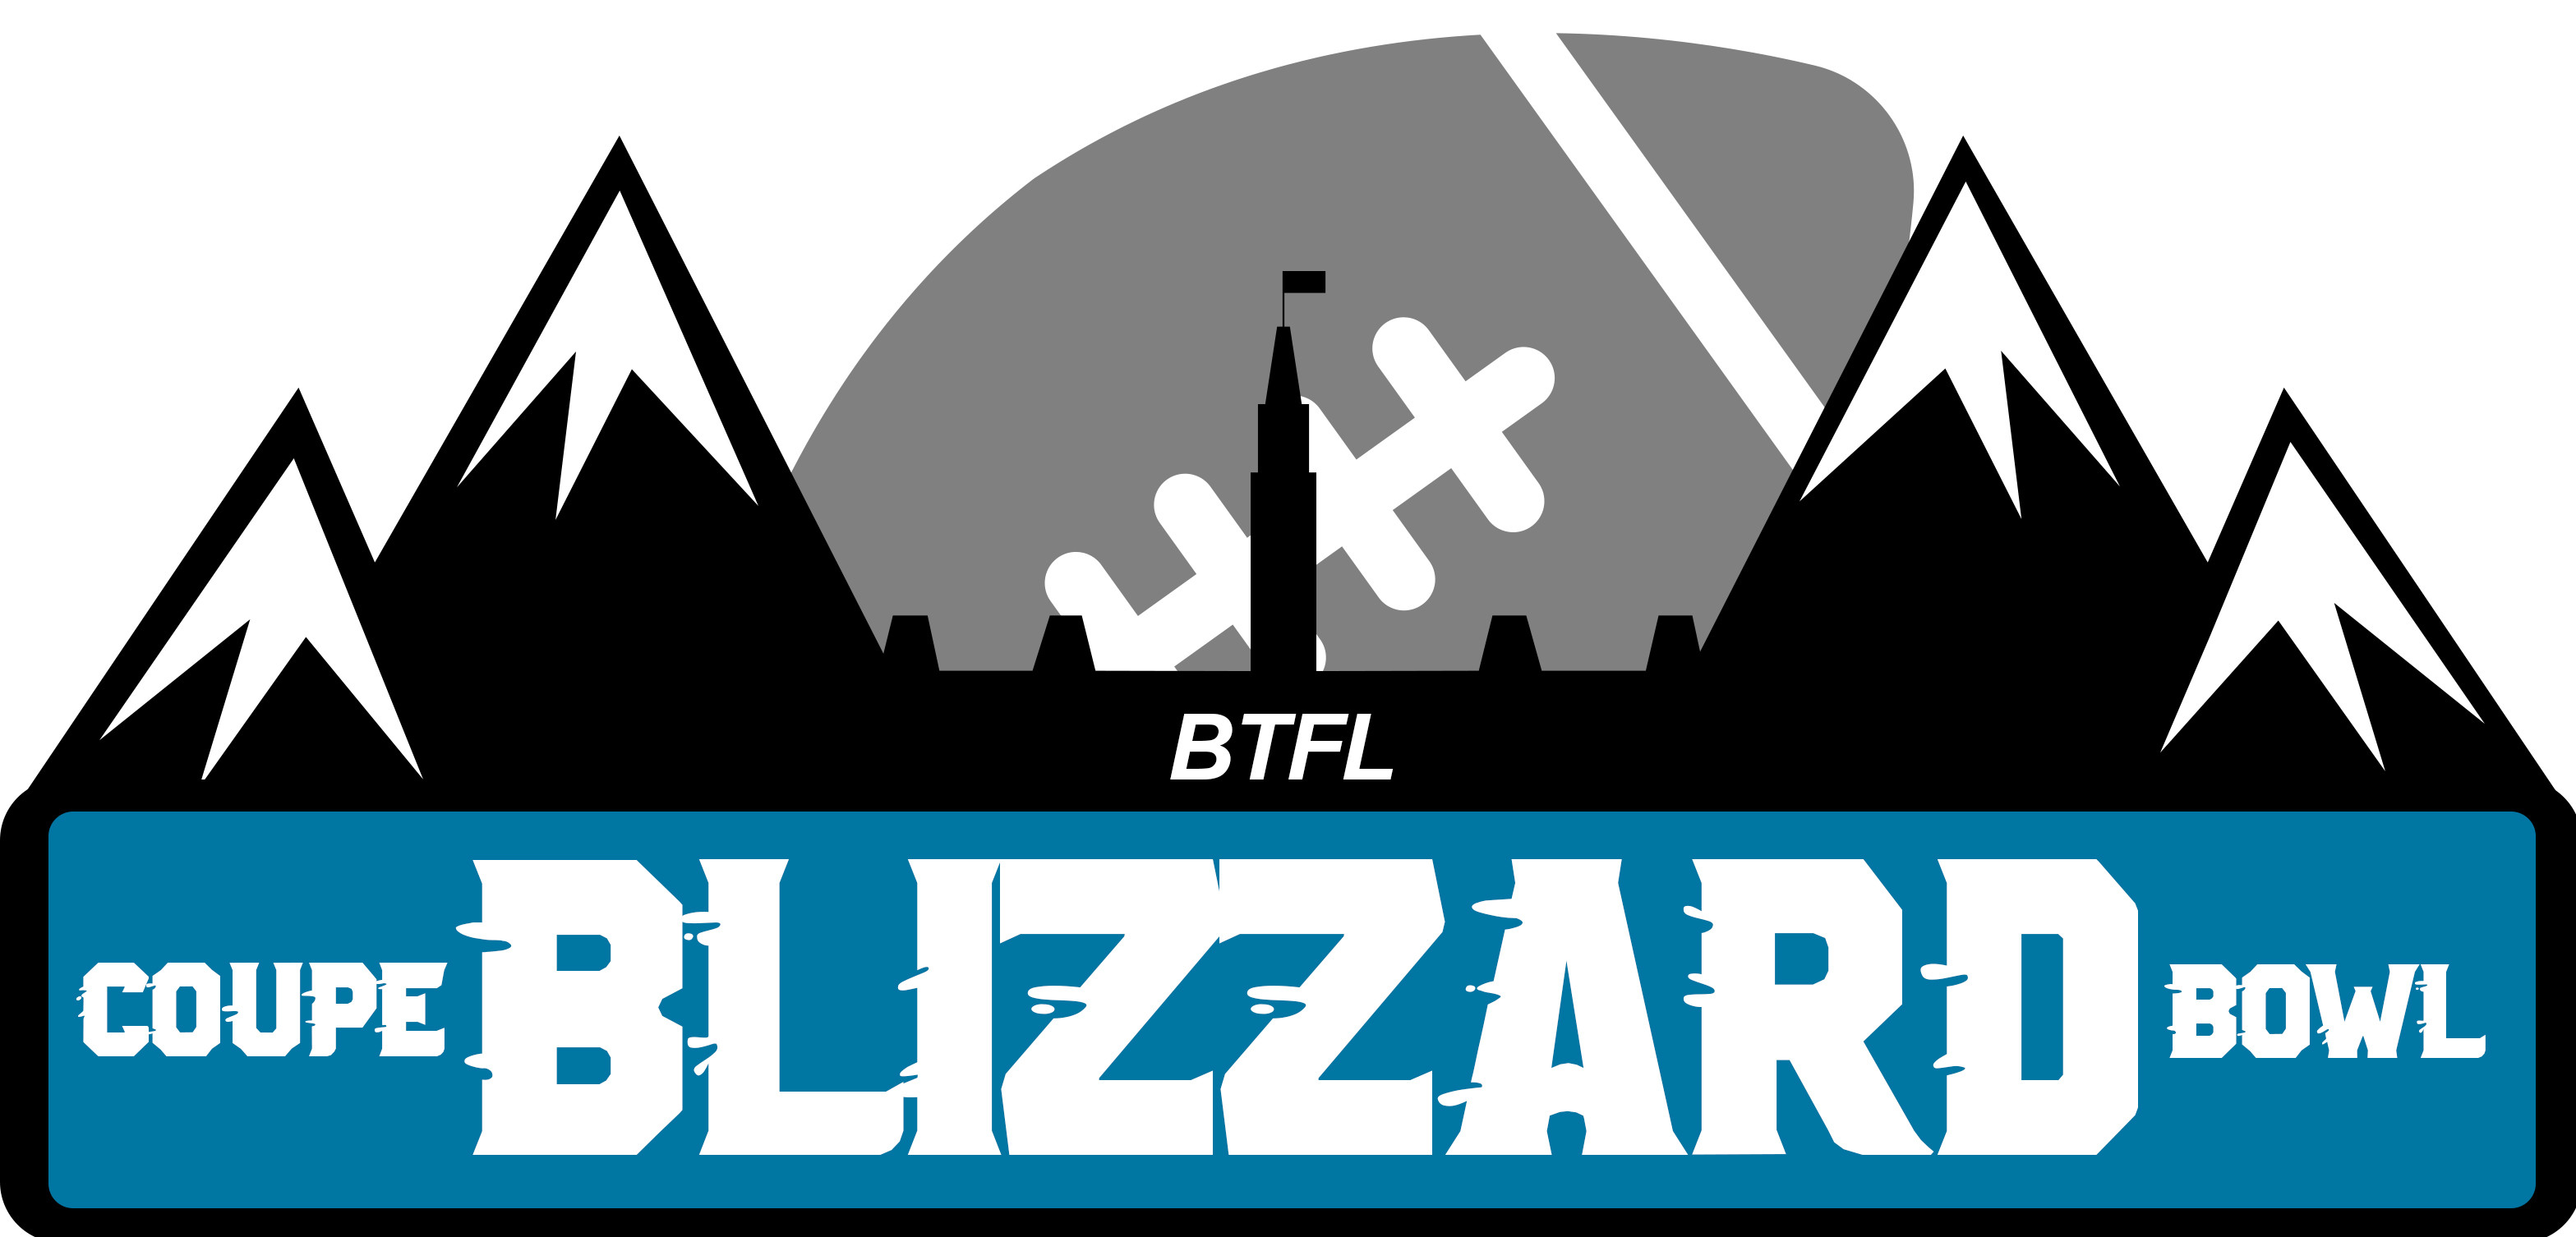 Blizzard Bowl Logo